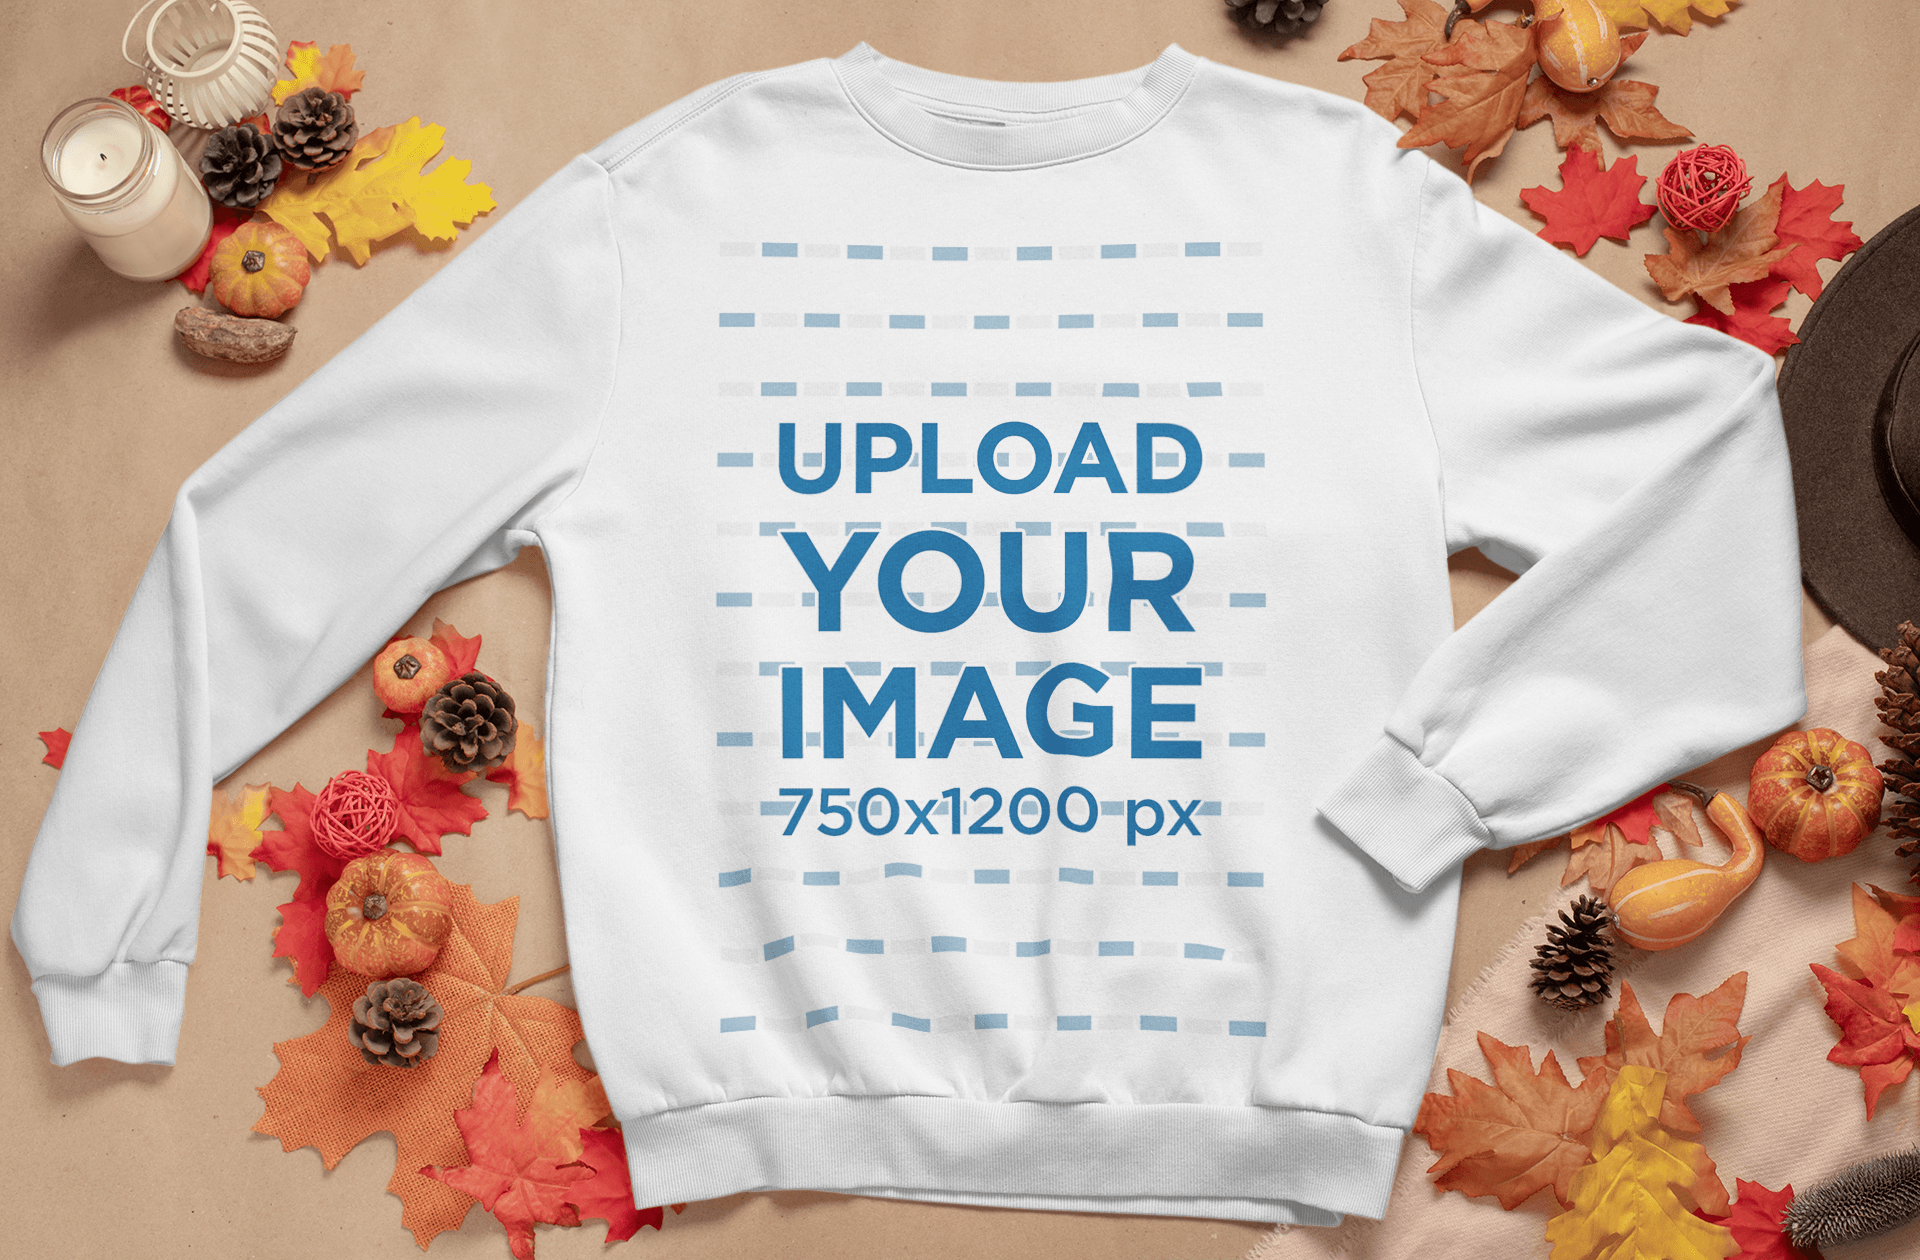 Crewneck Sweatshirt Mockup Featuring Fall Decorations 54